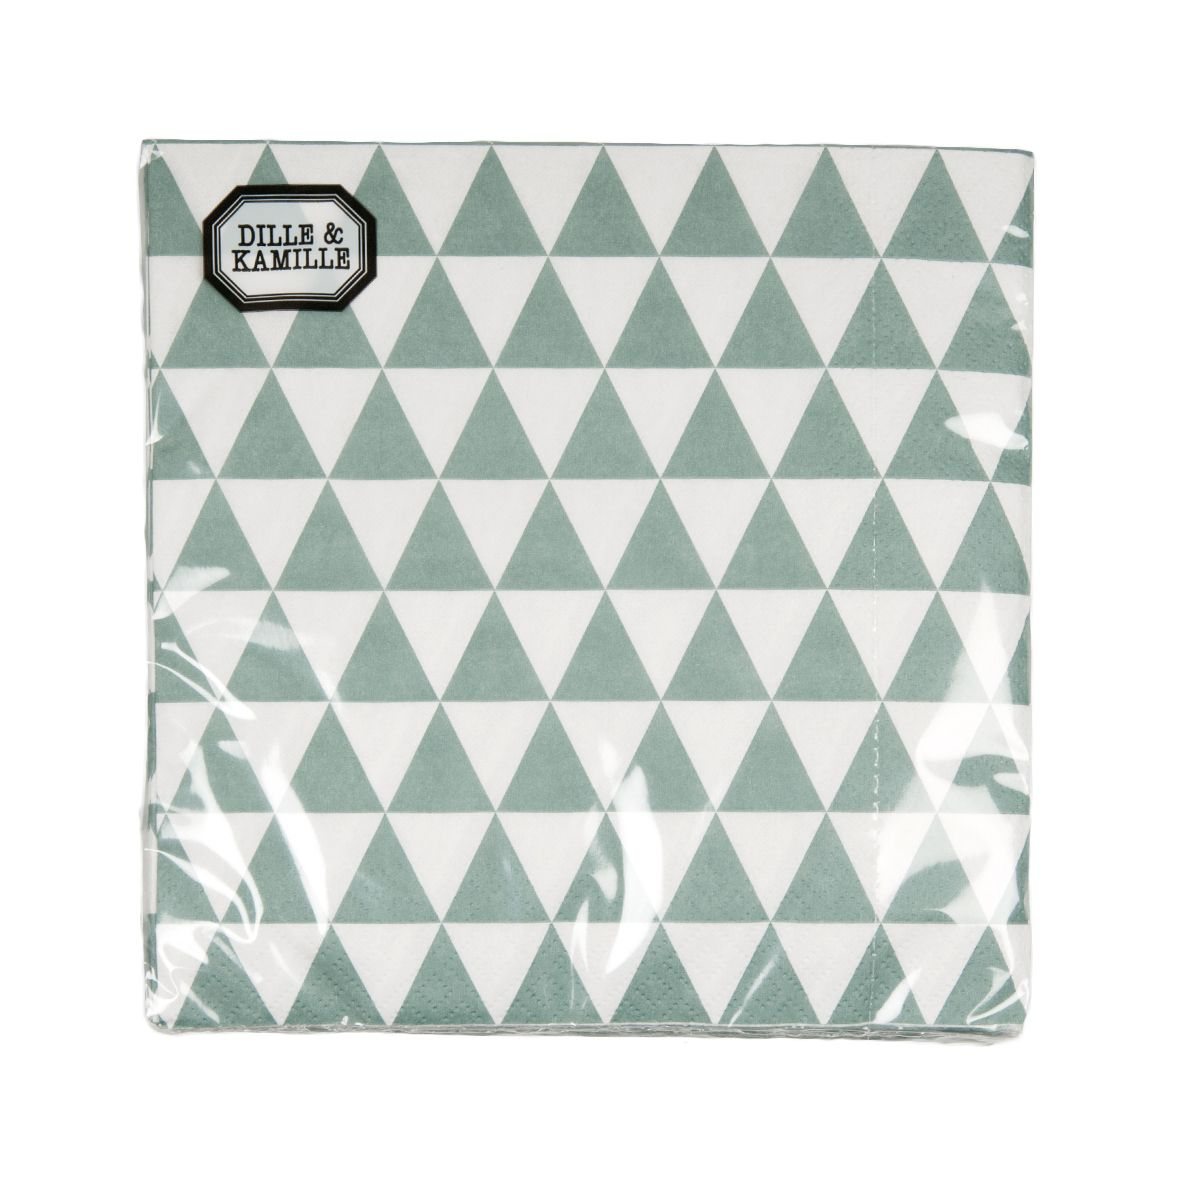 Serviettes en papier, triangles, gris-vert, 20pcs